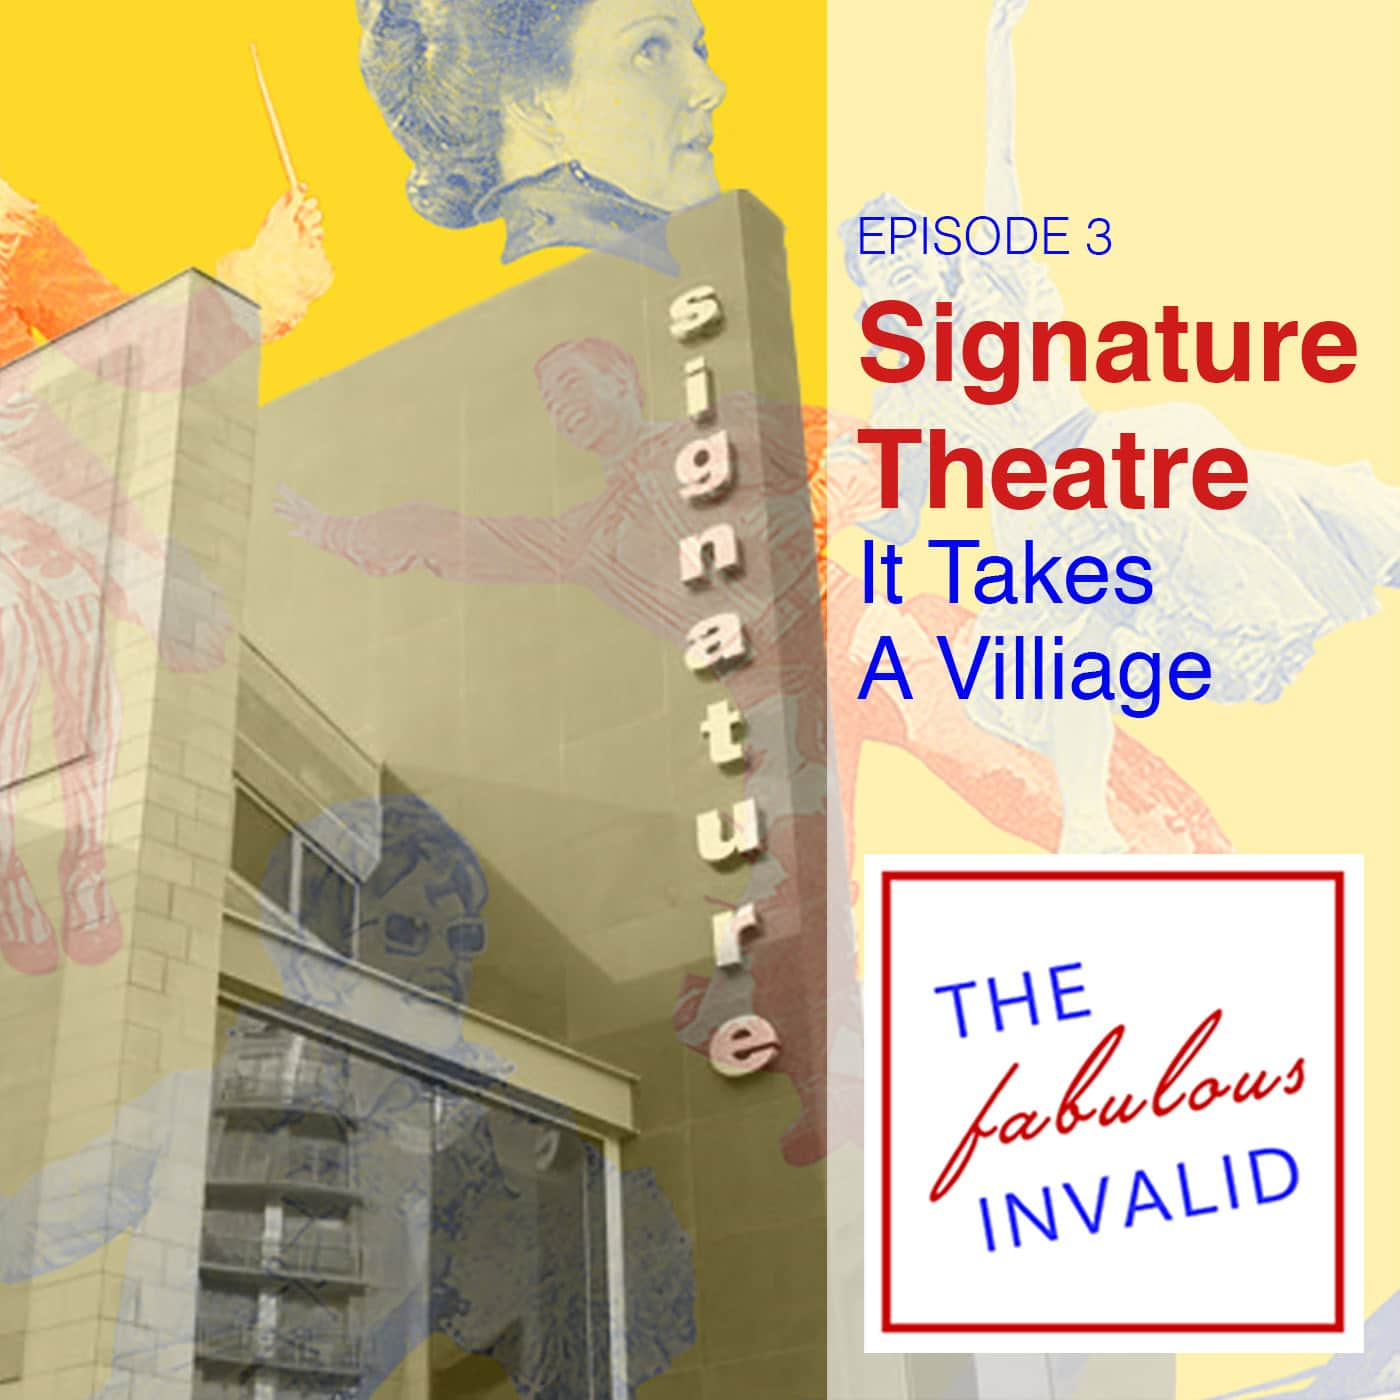 The Fabulous Invalid Ep 3 Signature Theatre